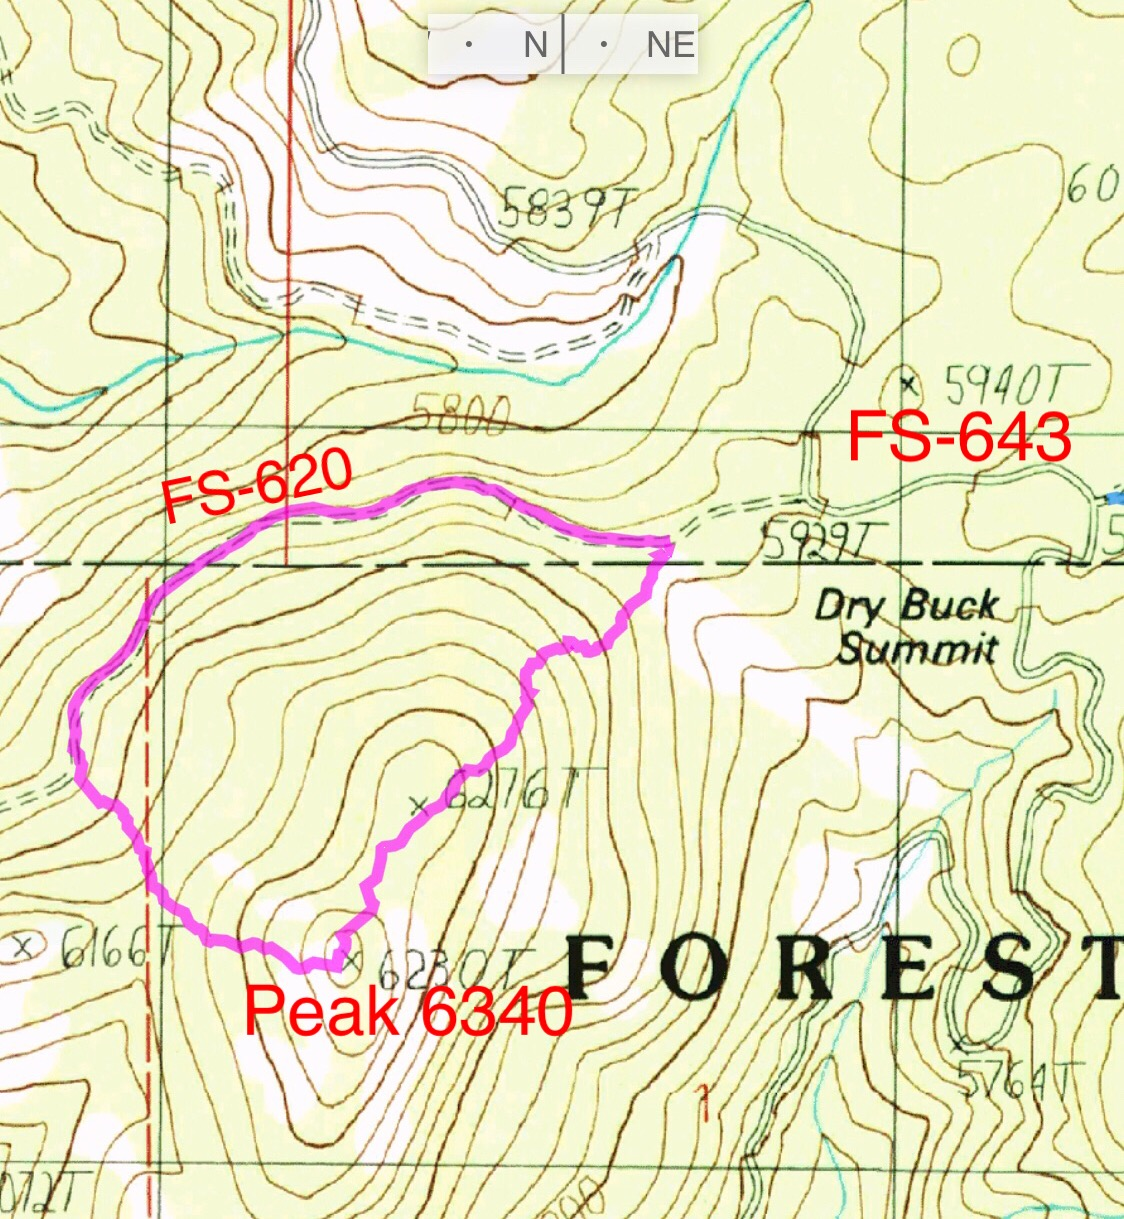 My GPS track for a loop on Peak 6340. FS-620 is a wide, well graded road. A 2WD can easily drive to the point where the westernmost line starts up the mountain. The loop covered 1.5 miles and 435 of elevation gain.